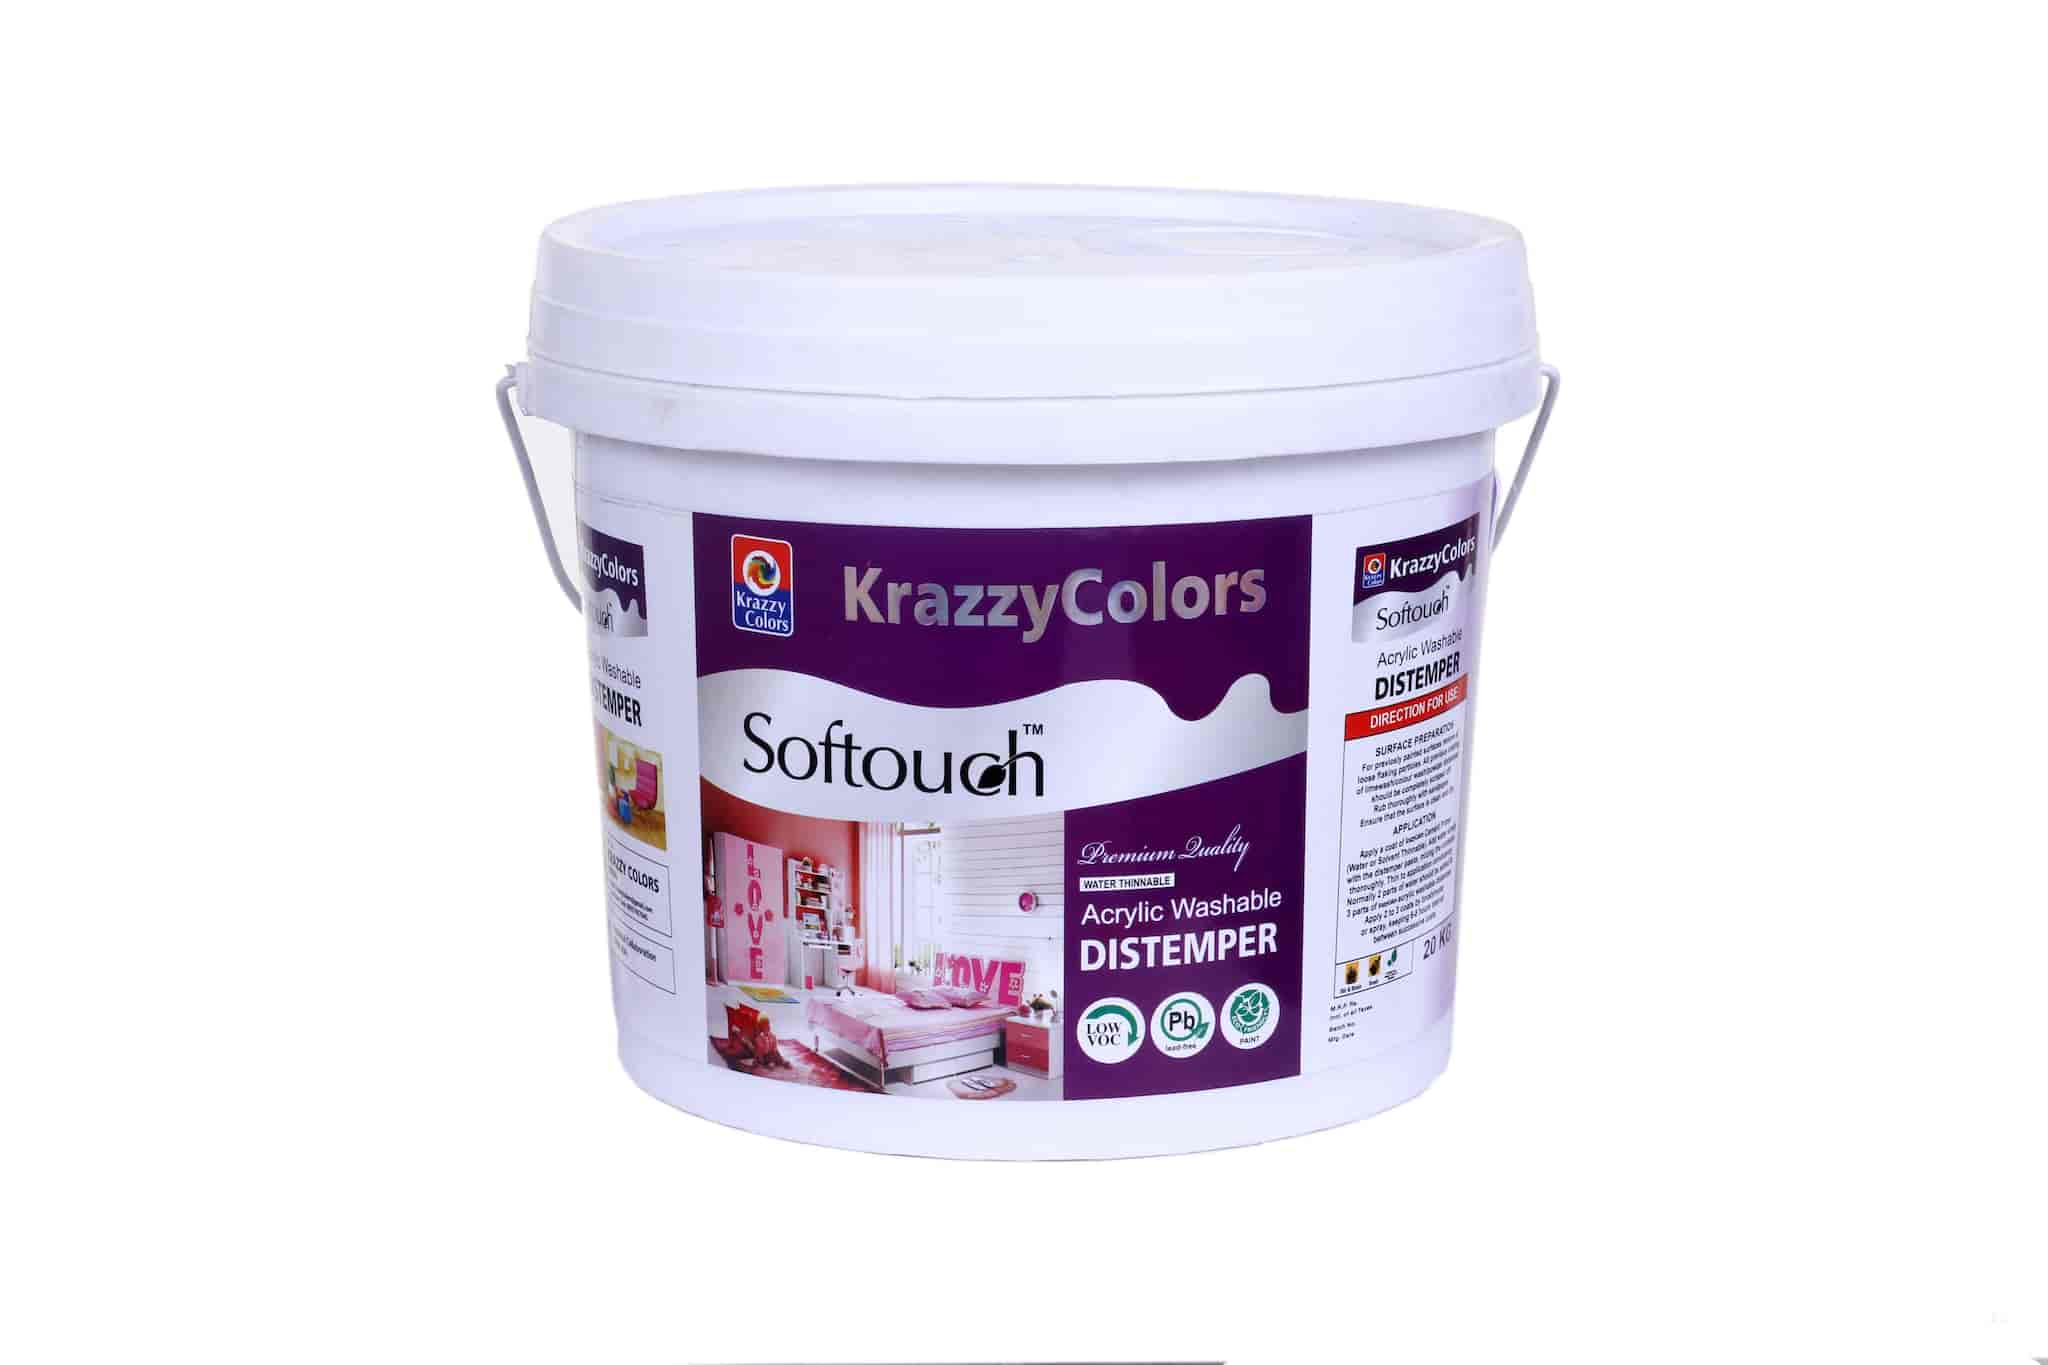 KRAZZY COLORS - Paint Manufacturers in Mathura - Justdial